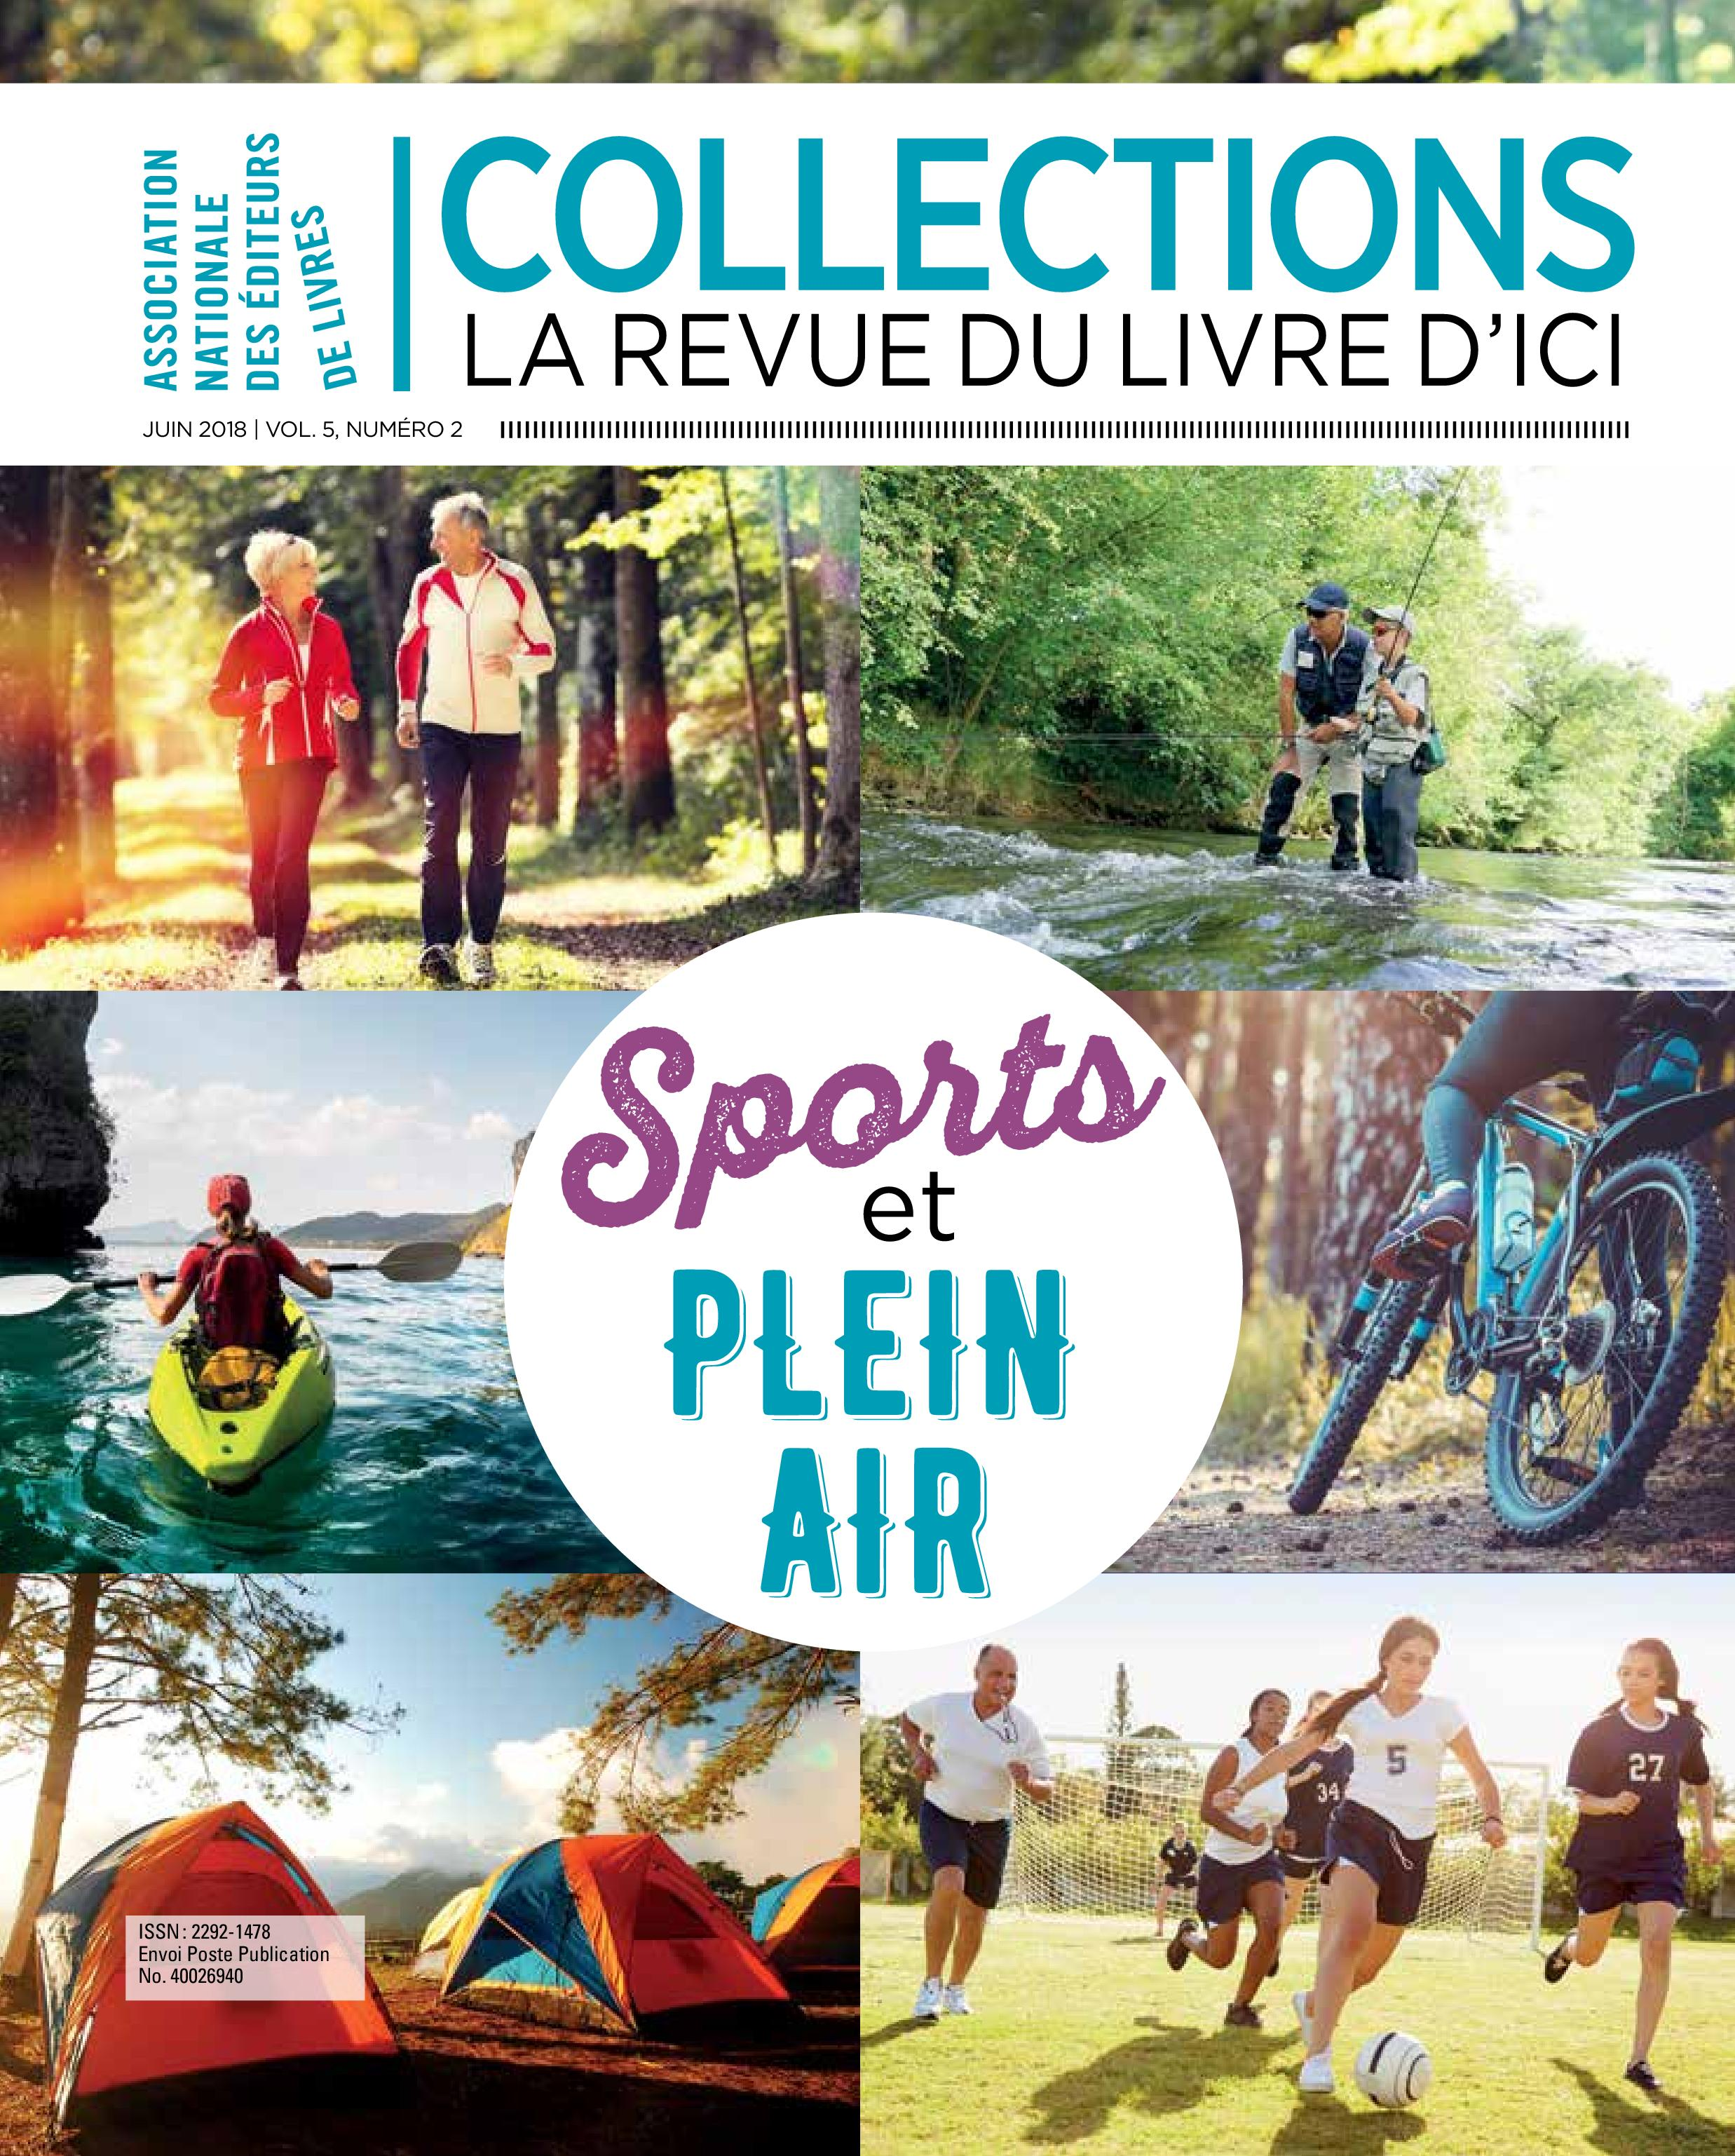 Collections, Vol 5, No 2, Sports et plein air